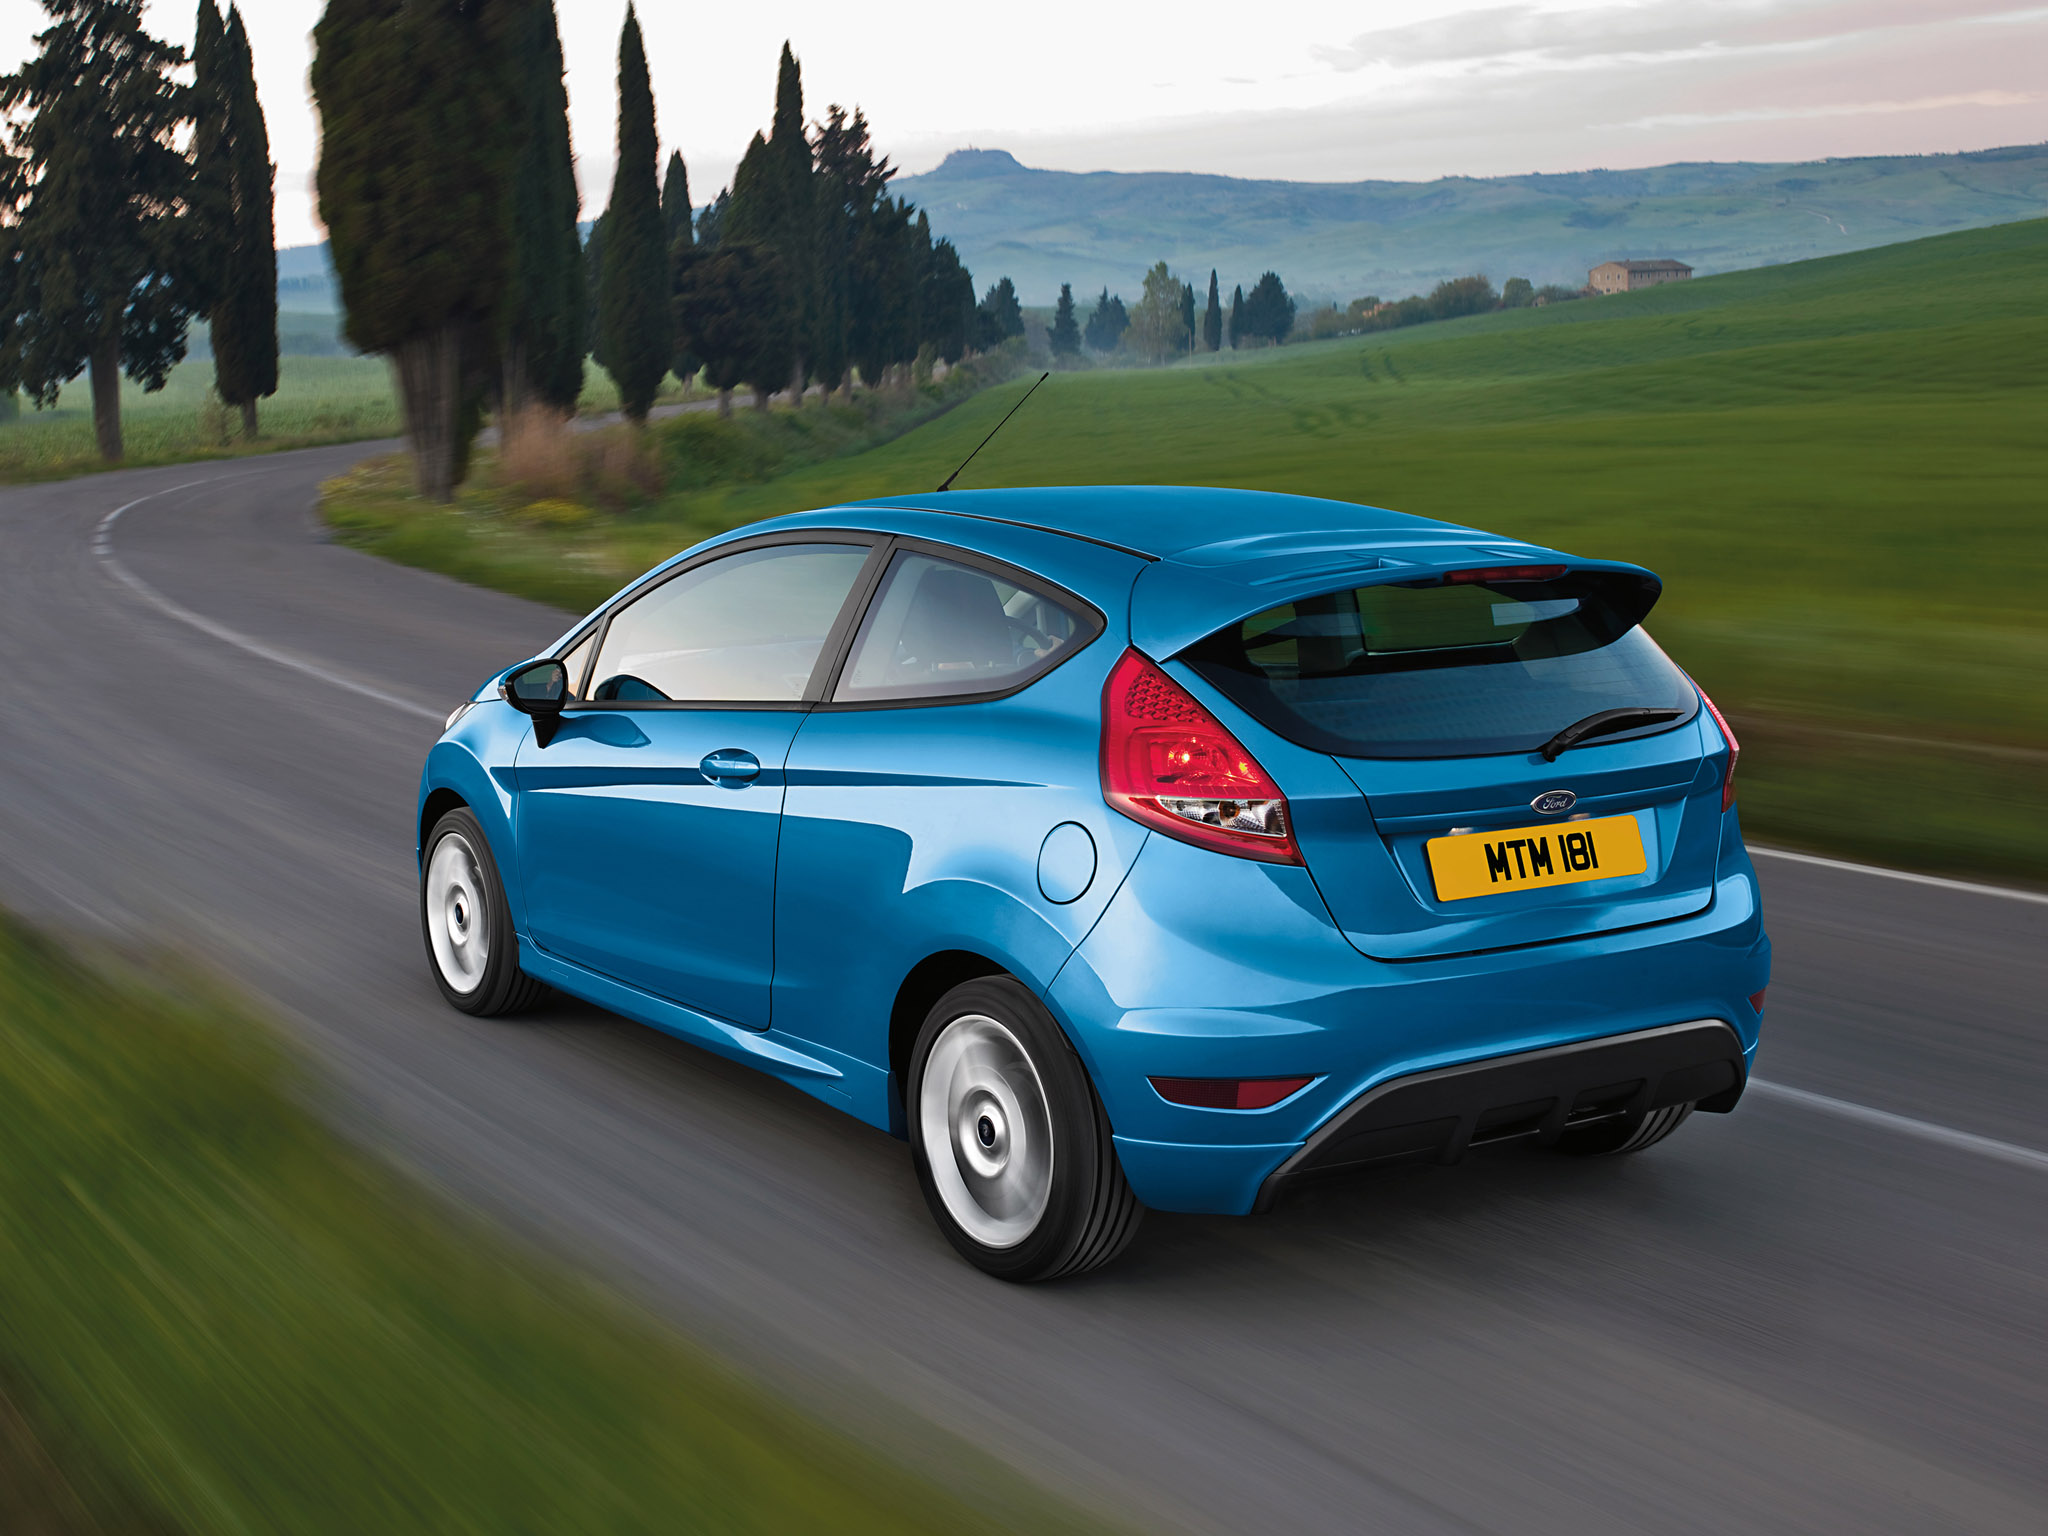 ford fiesta zetec s 2008 ford fiesta zetec s 2008 photo 05 car in pictures car photo gallery. Black Bedroom Furniture Sets. Home Design Ideas